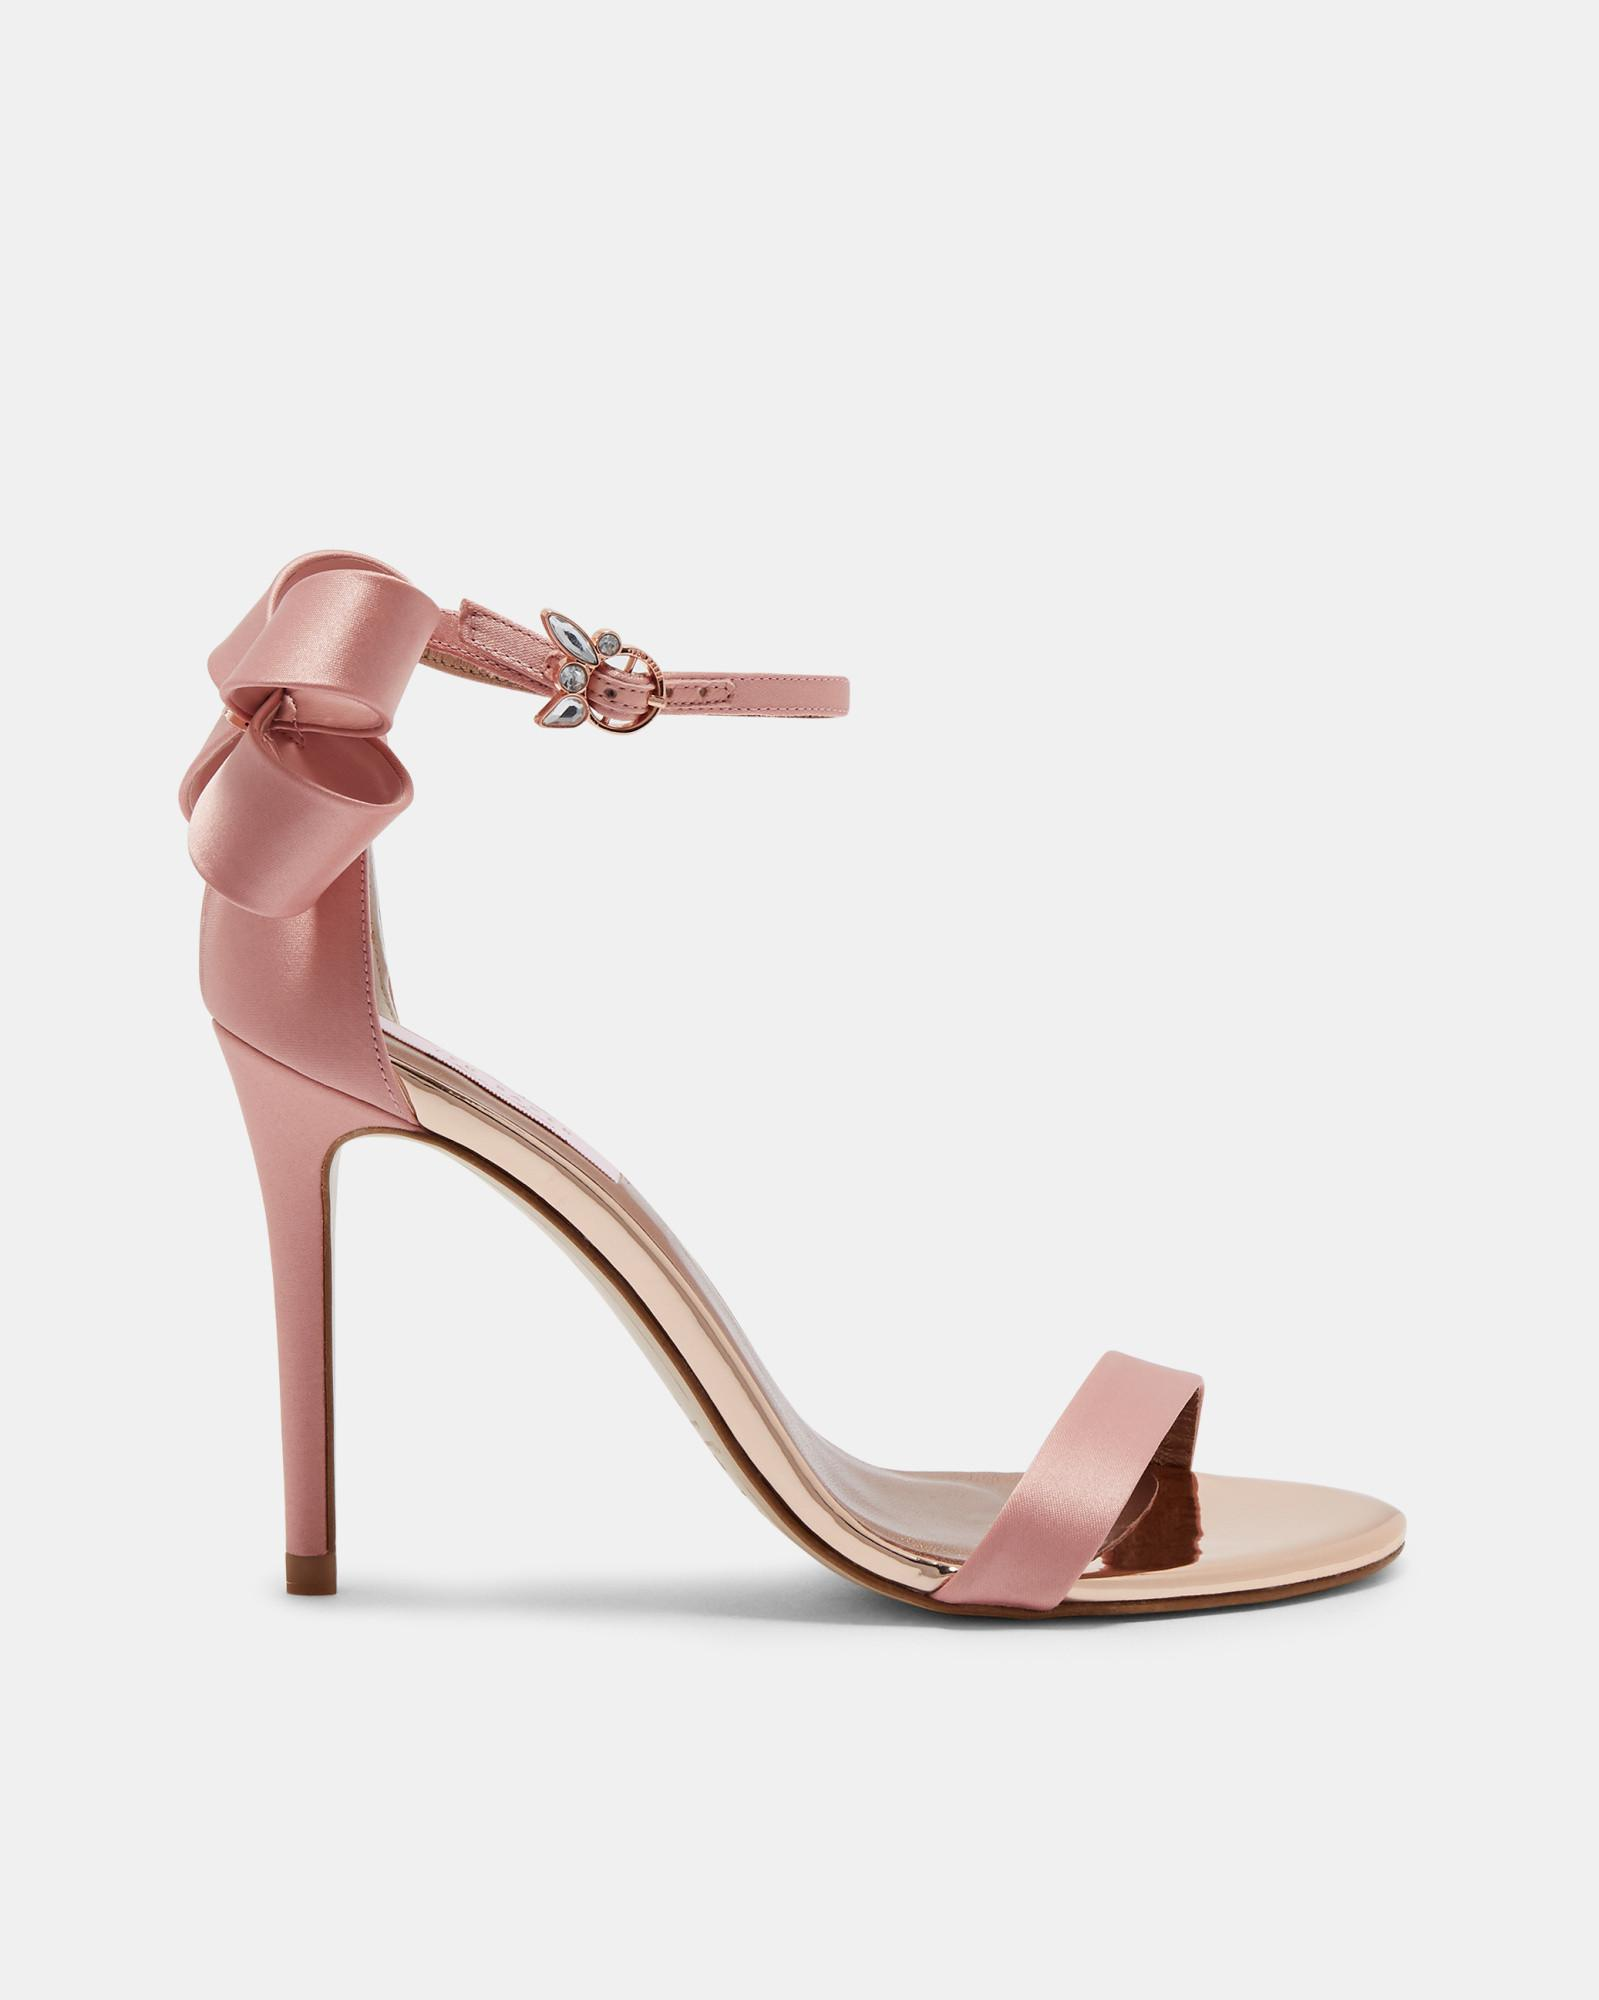 6db25273b Lyst - Ted Baker Bow Detail Heeled Sandals in Pink